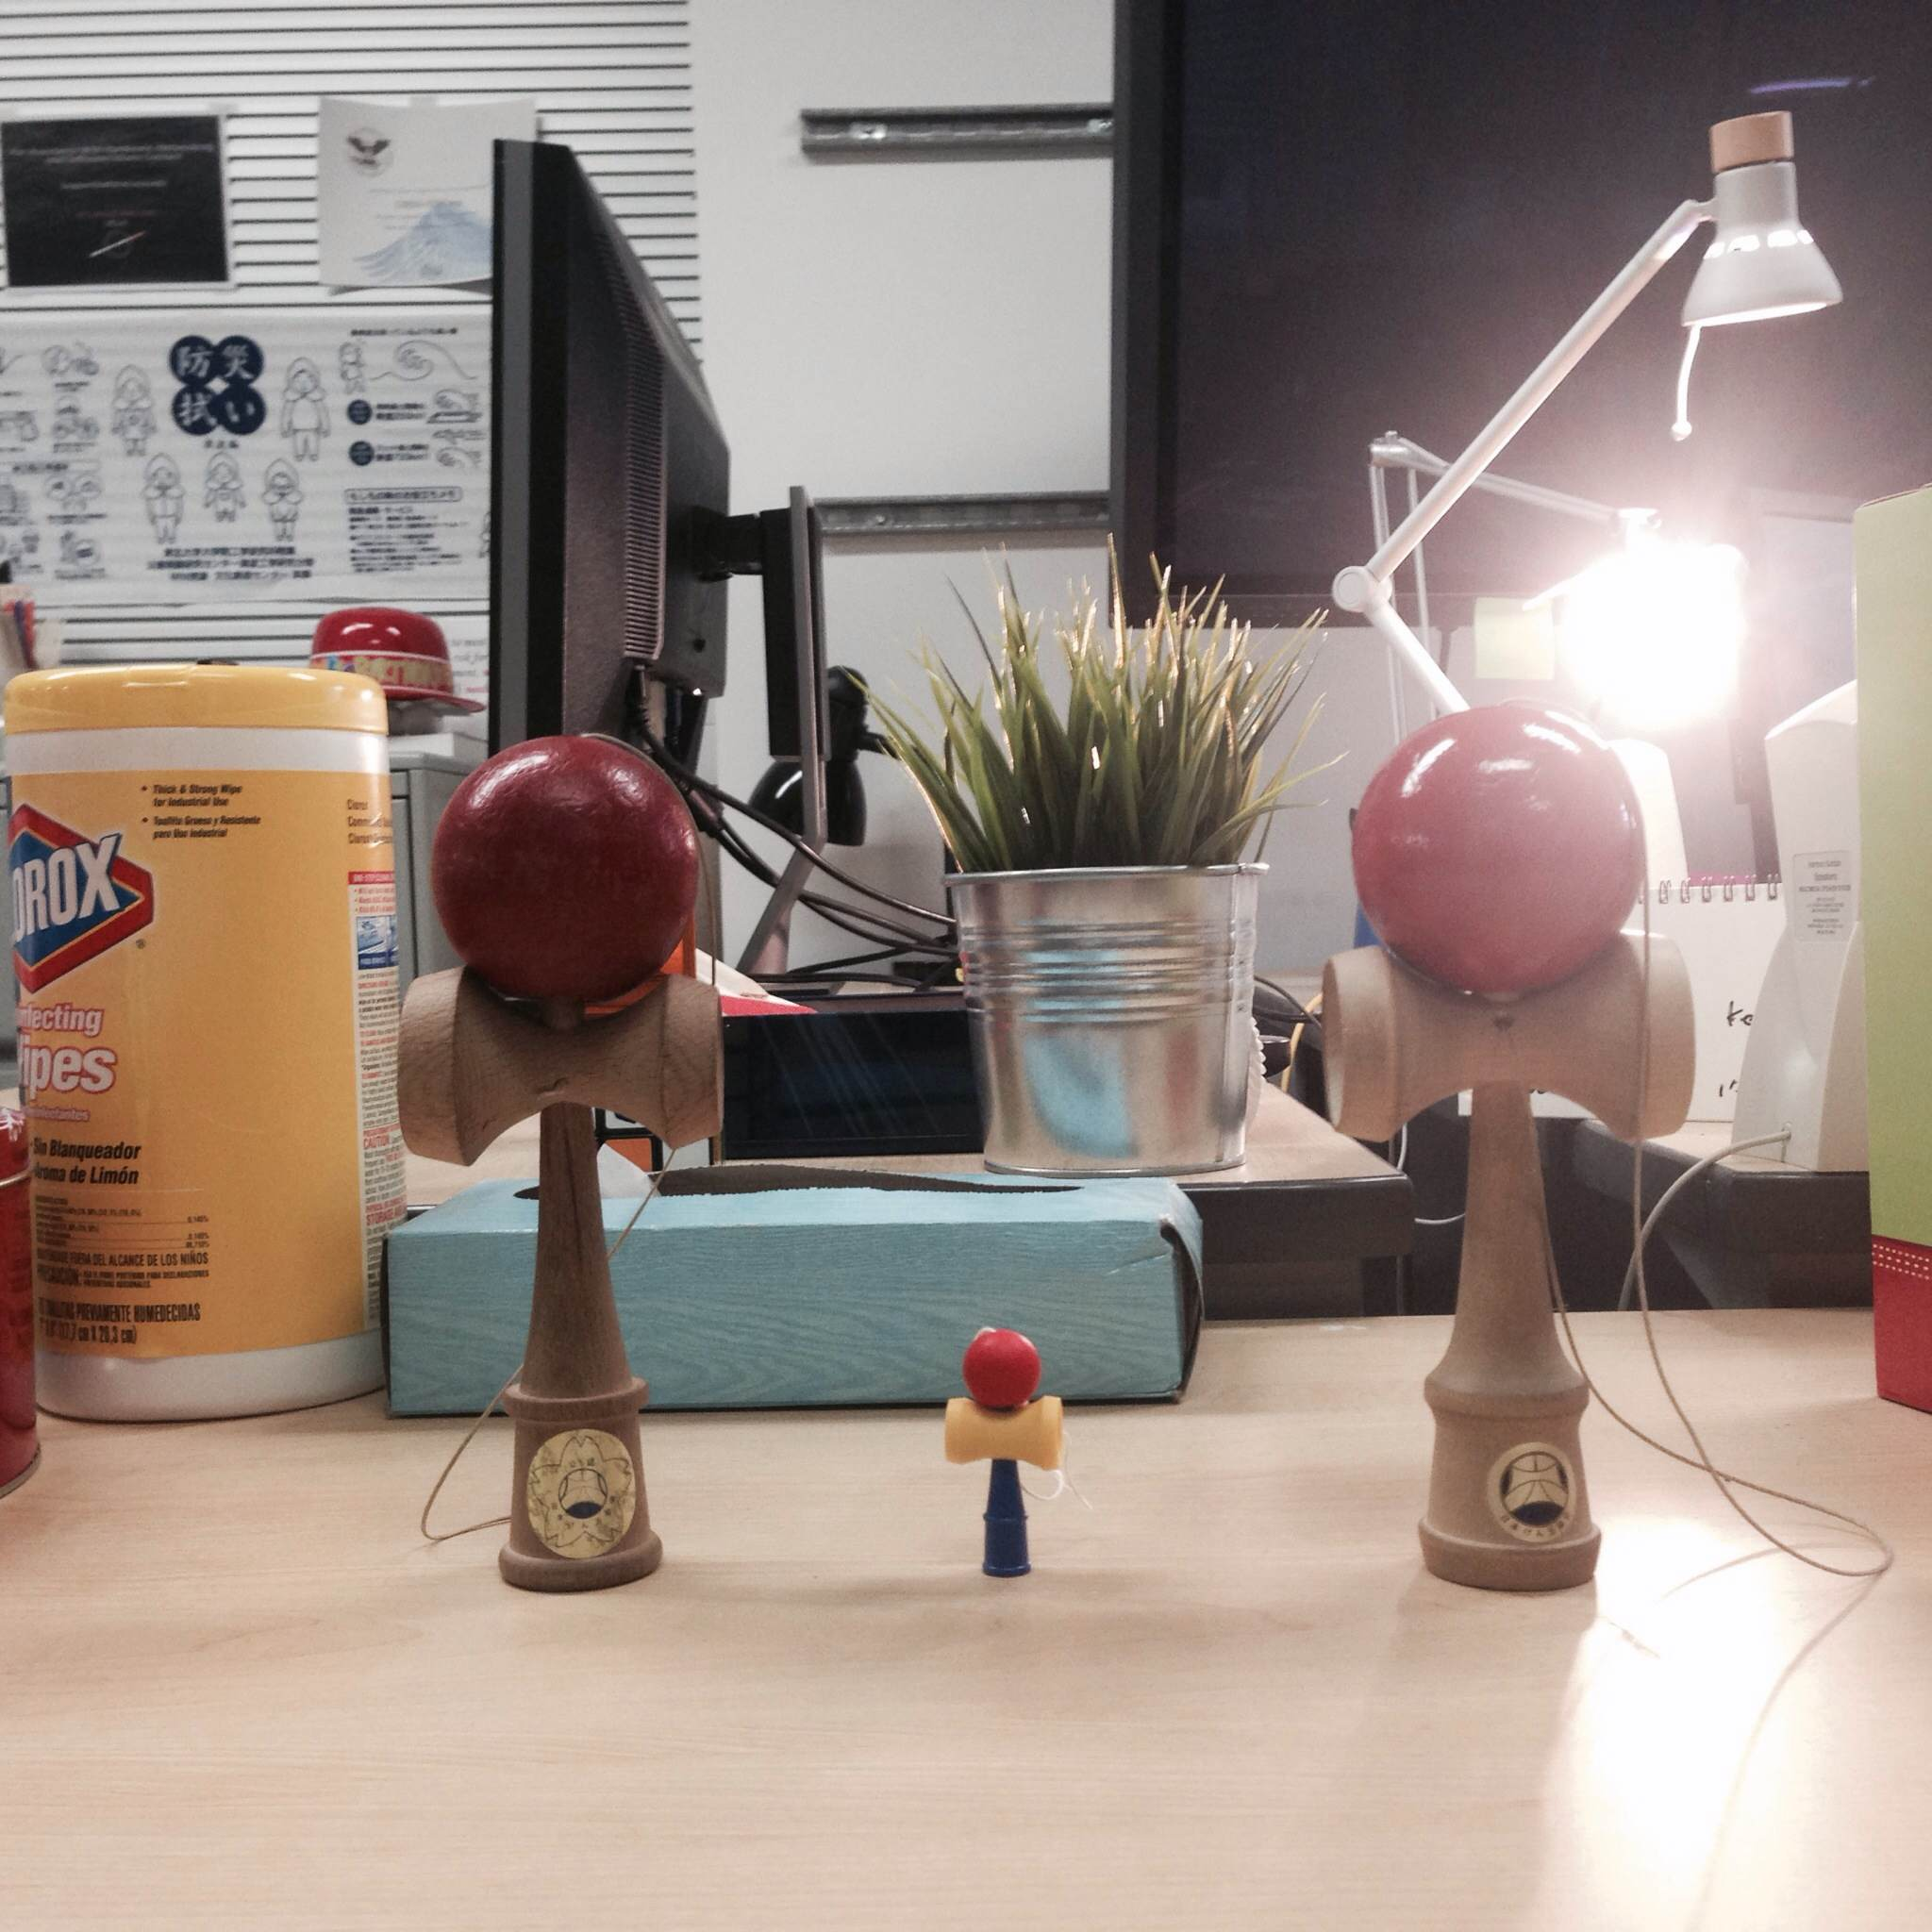 kendama's come in all sizes